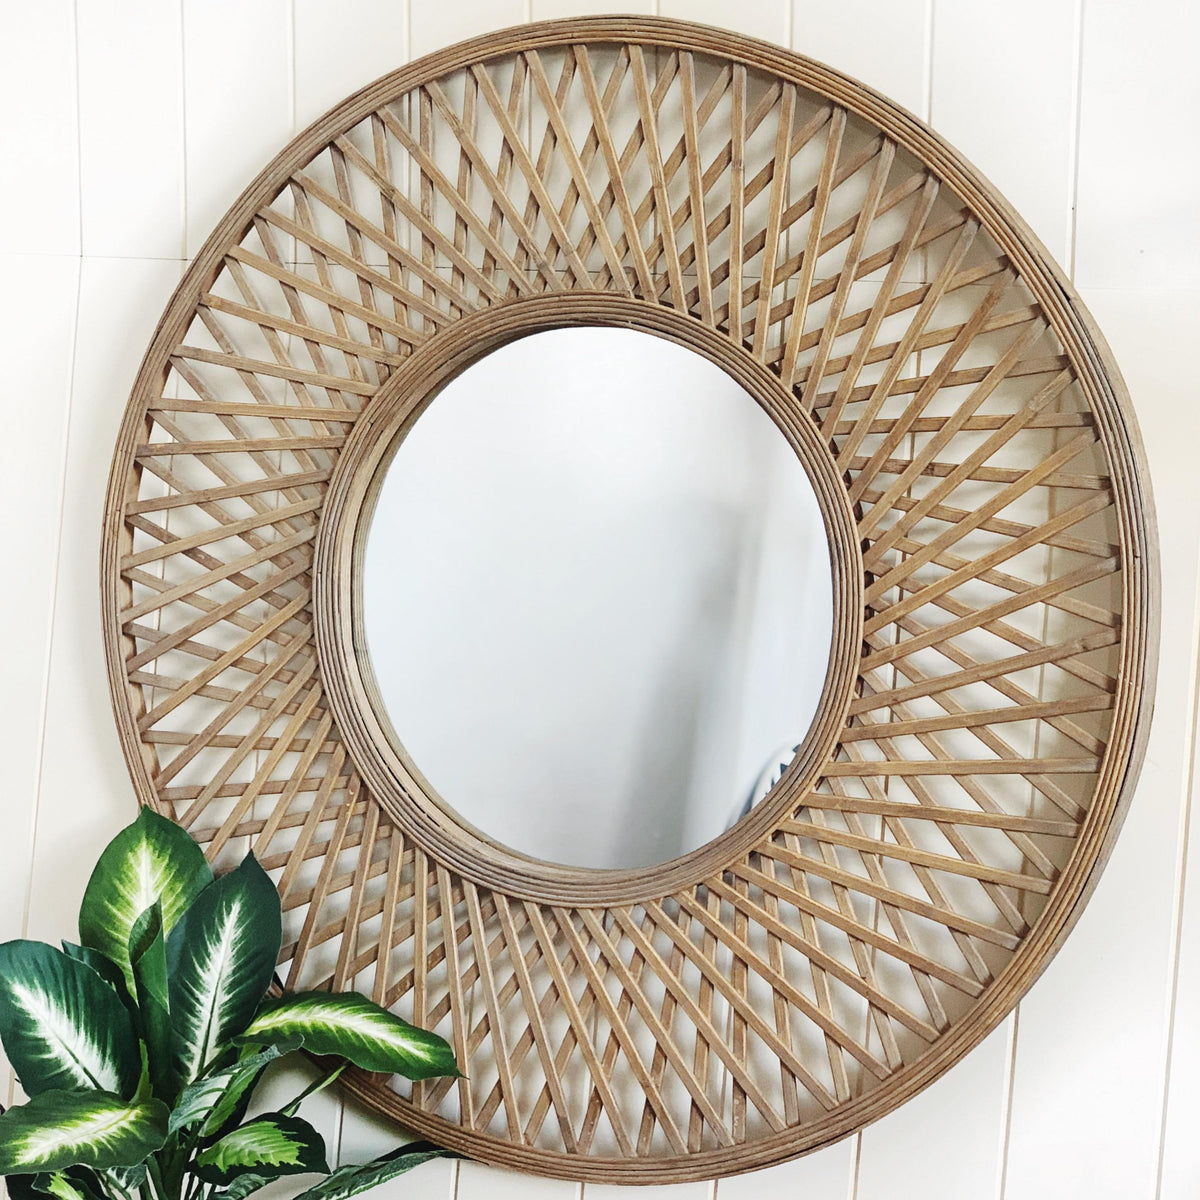 Mirrors - Rattan - Natural Oasis Round Rattan Mirror - 79cm |Bliss Gifts & Homewares - Unit 8, 259 Princes Hwy Ulladulla - Shop Online & In store - 0427795959, 44541523 - Australia wide shipping